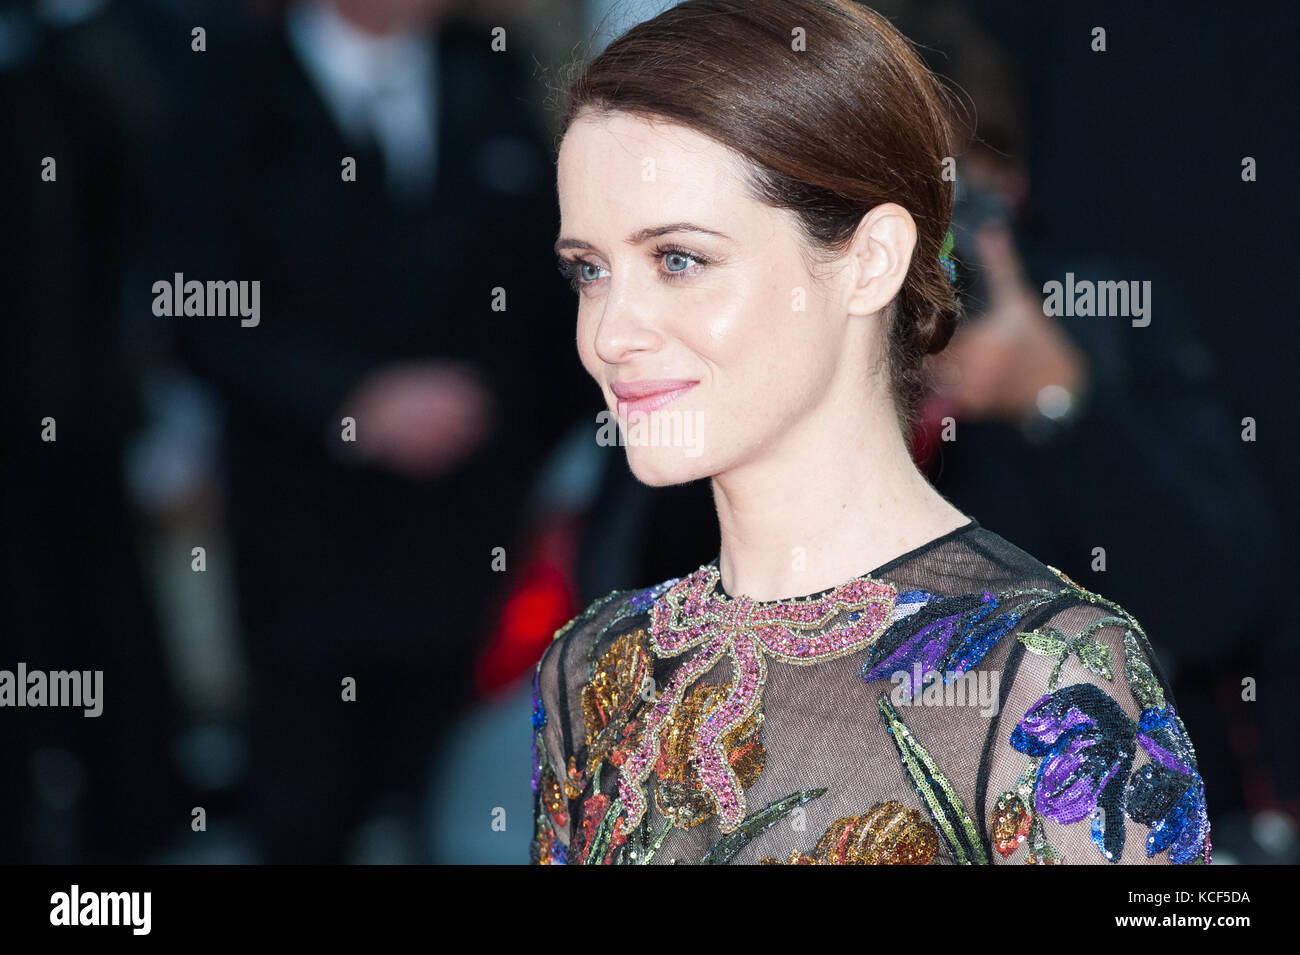 London, UK. 4th October 2017. Claire Foy arrives for the UK film premiere of Breathe at Odeon Leicester Square during the 61st BFI London Film Festival Opening Night Gala. Credit: Wiktor Szymanowicz/Alamy Live News Stock Photo